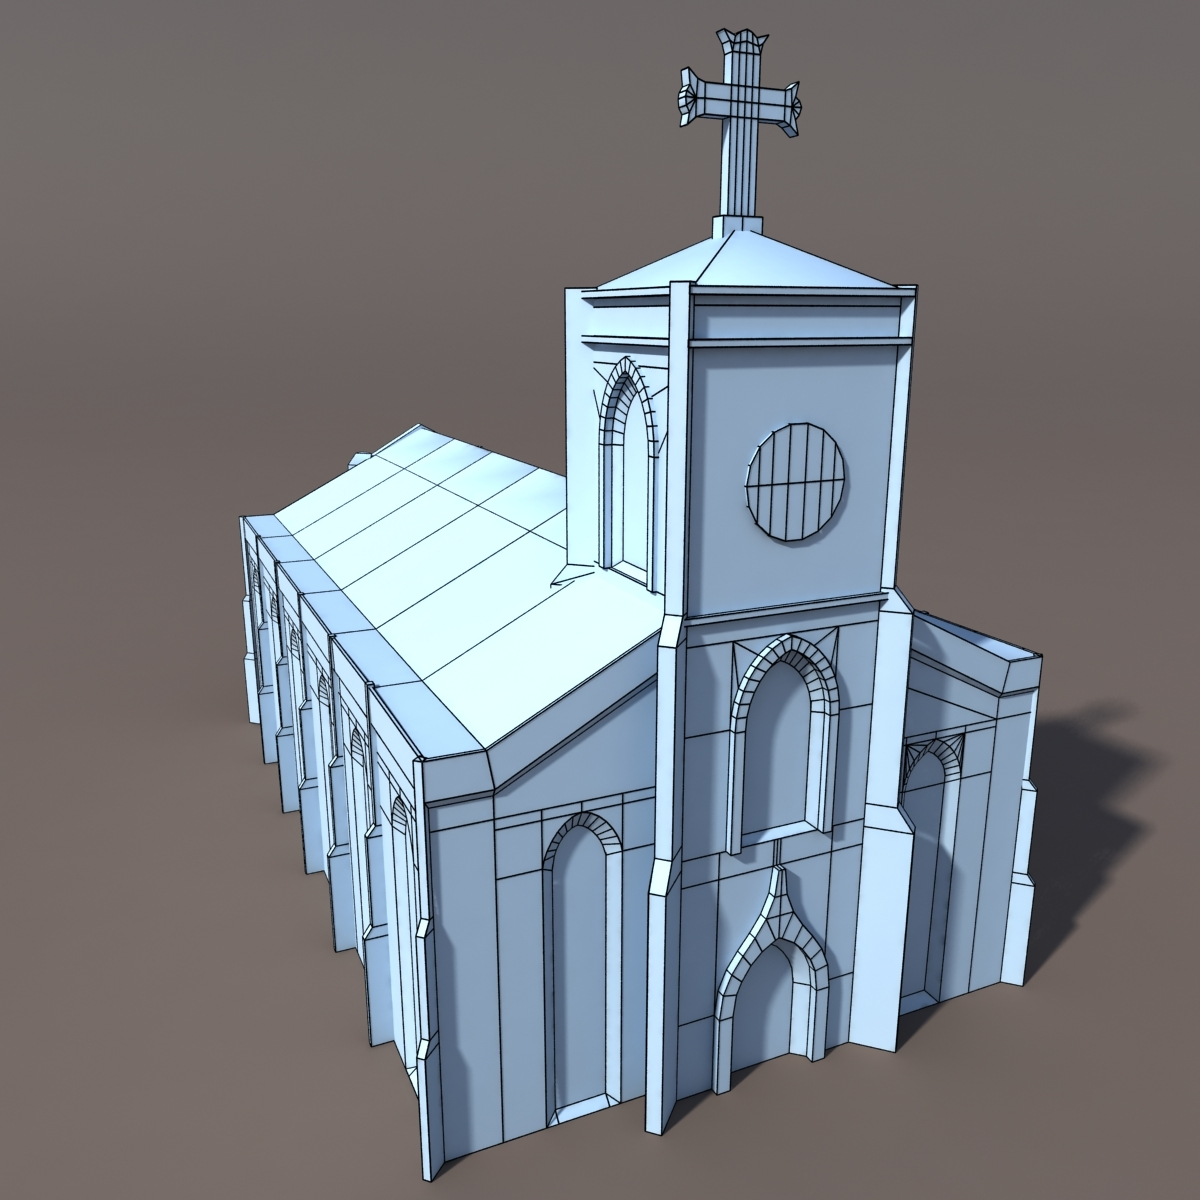 Church Low Poly 3d Model By Cerebrate 3docean